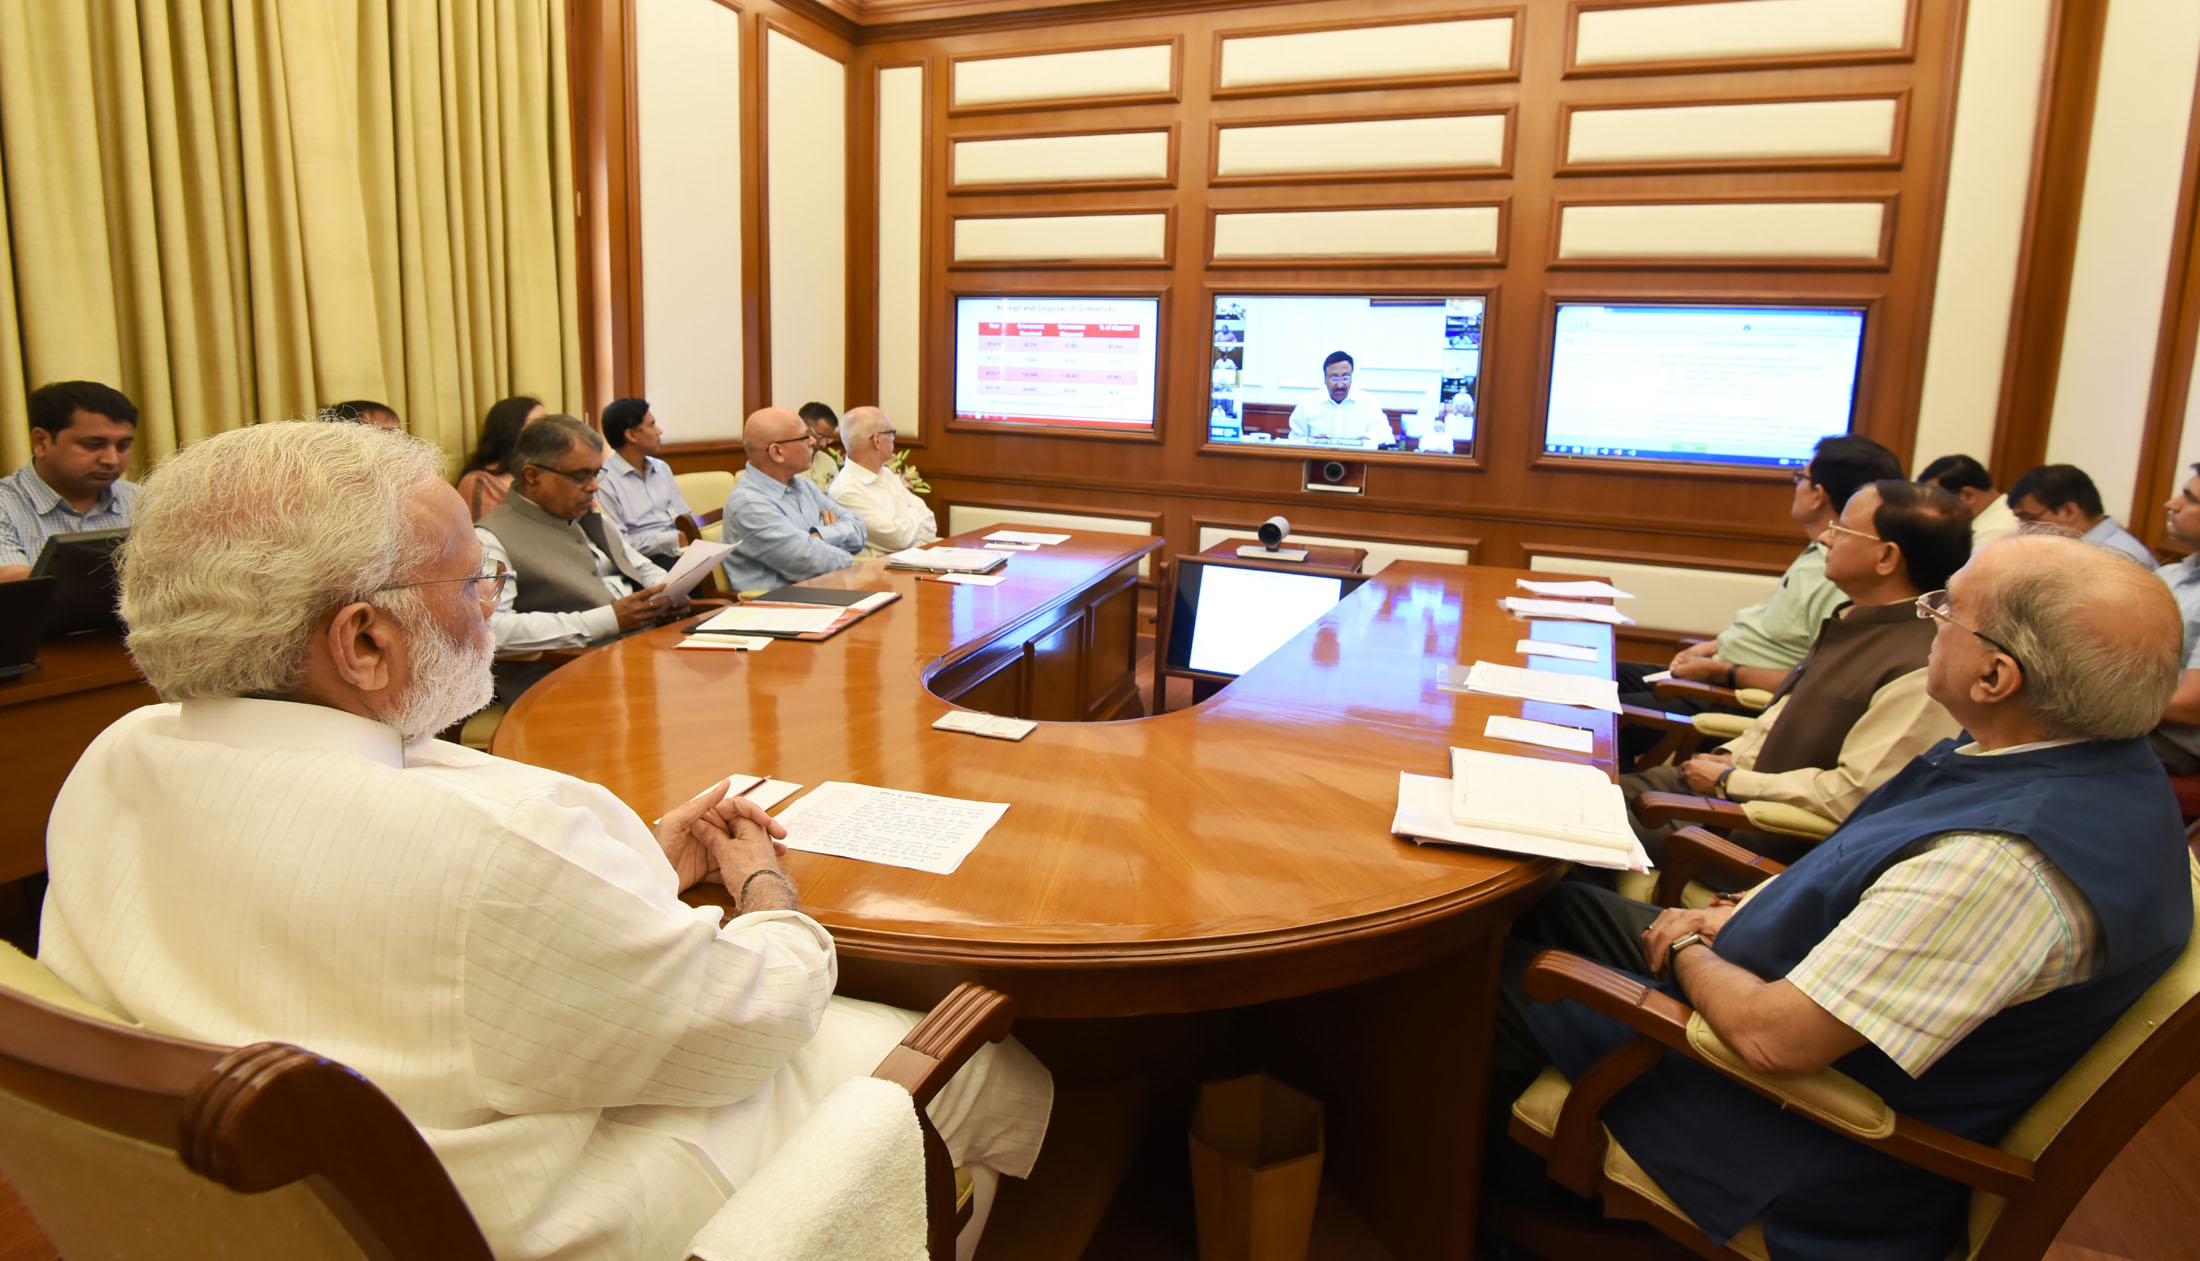 The Prime Minister, Shri Narendra Modi chairing 22nd interaction through PRAGATI - the ICT-based, multi-modal platform for Pro-Active Governance and Timely Implementation, in New Delhi on September 27, 2017.